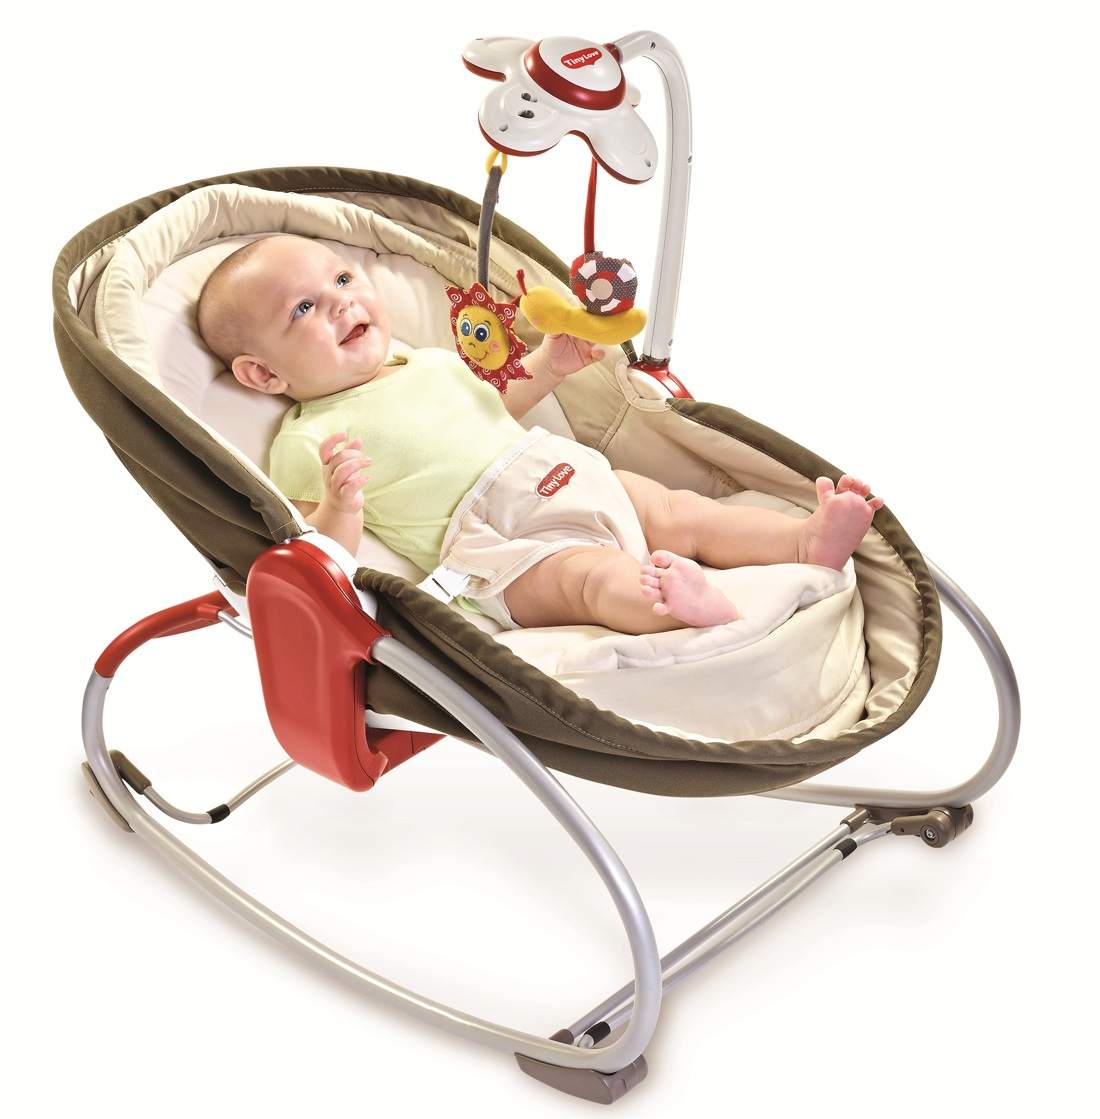 Tiny Love's 3 in 1 Rocker Napper Debuts at Retail #B1831A 1100x1119